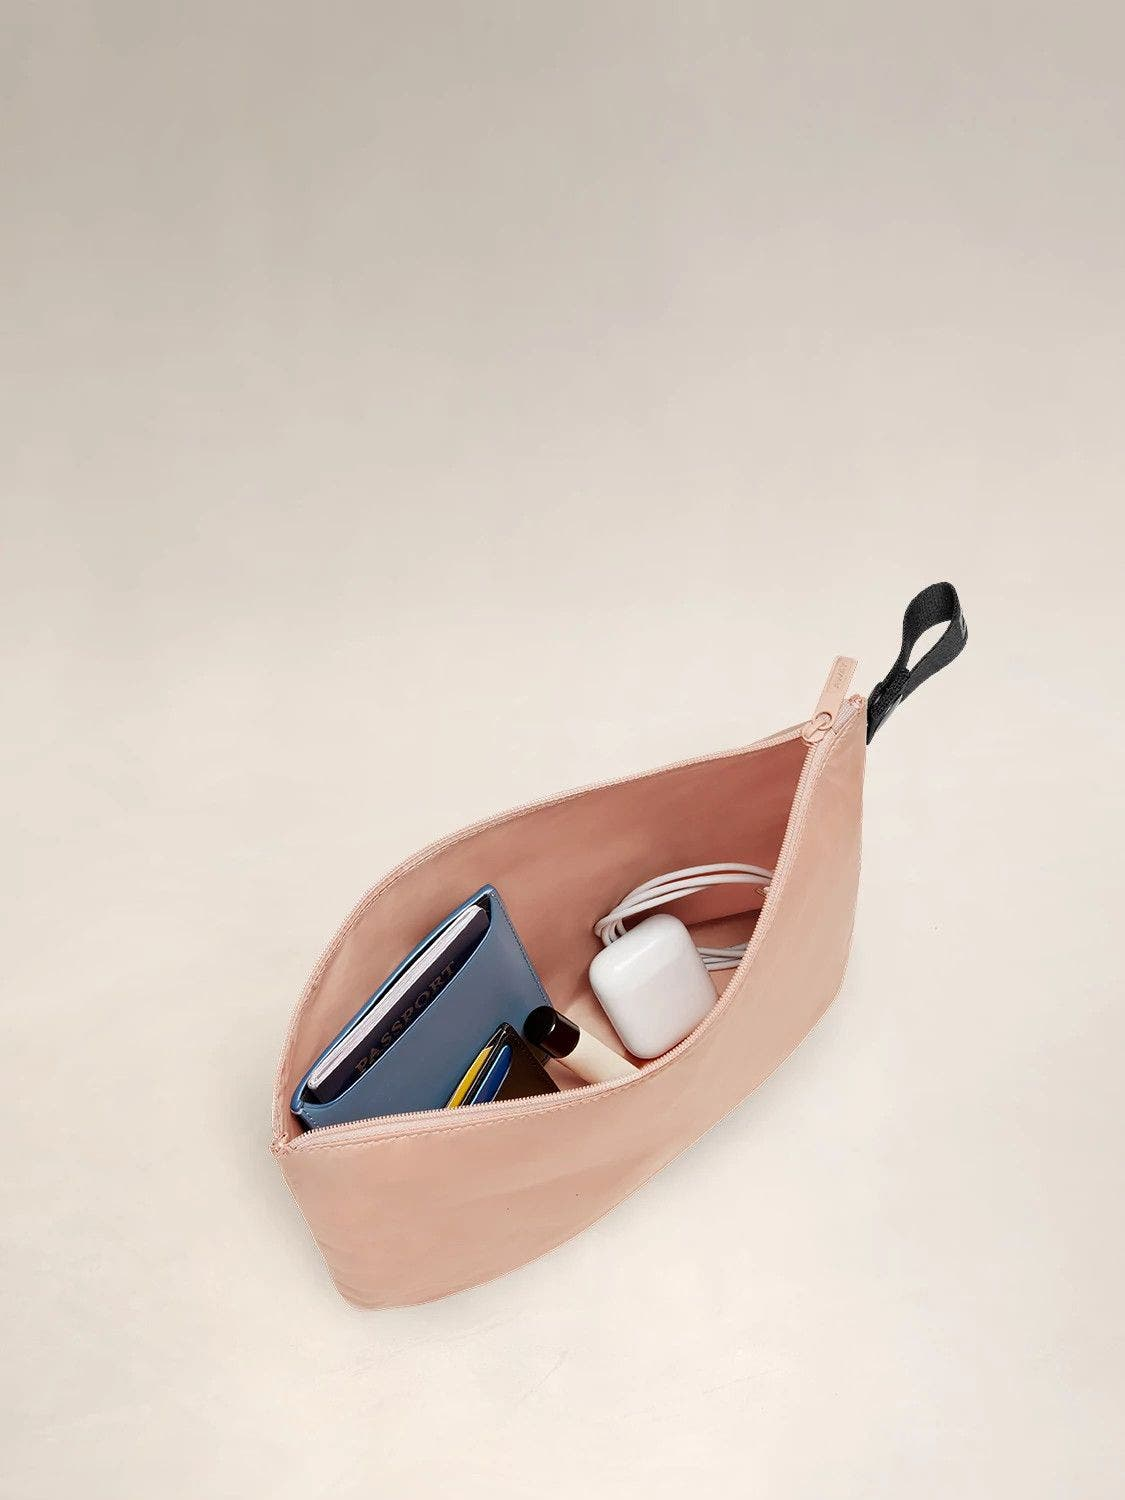 Open view of the Away large organizational travel pouch in the color petal pink filled with various packable items including airpods, chapstick and a phone charger